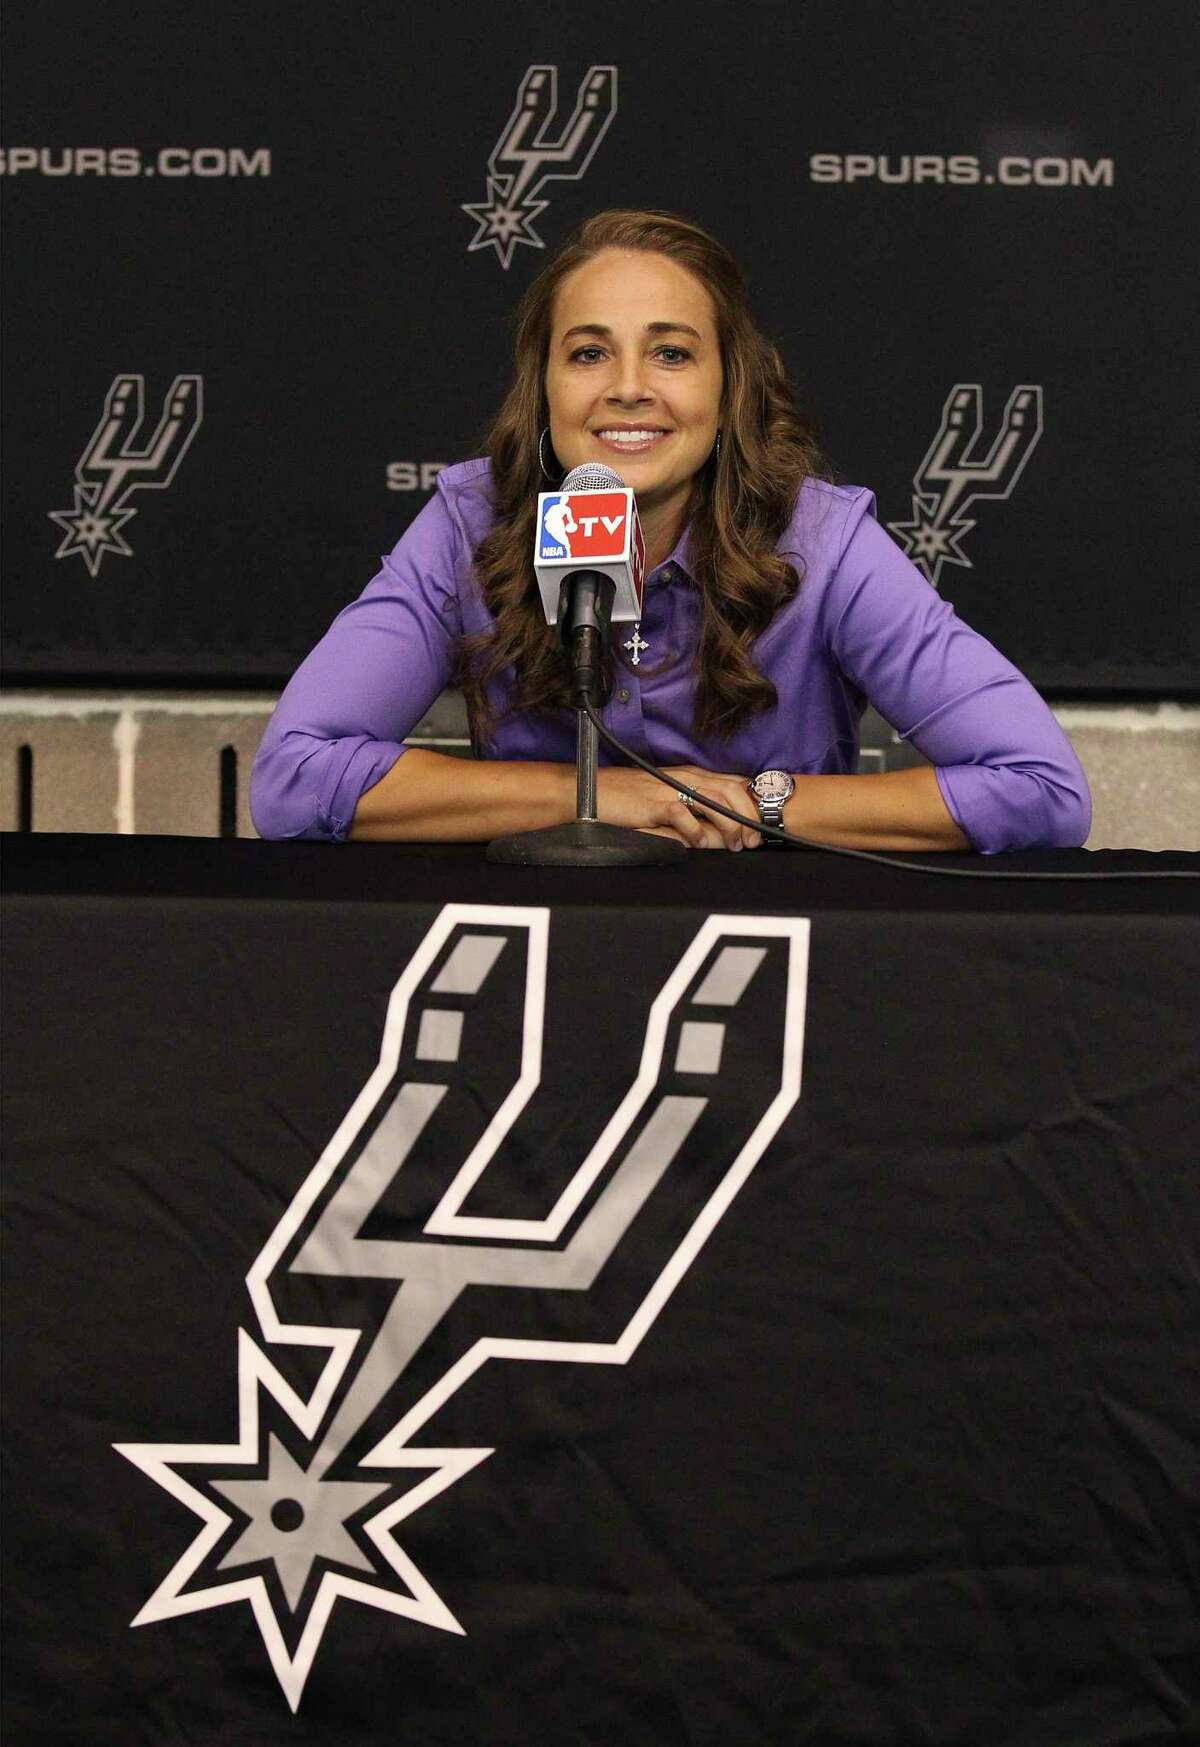 When Becky Hammon, pictured here in 2014, makes history and breaks more barriers - she will have earned it- just as she has throughout her time on the court as a player and a coach.